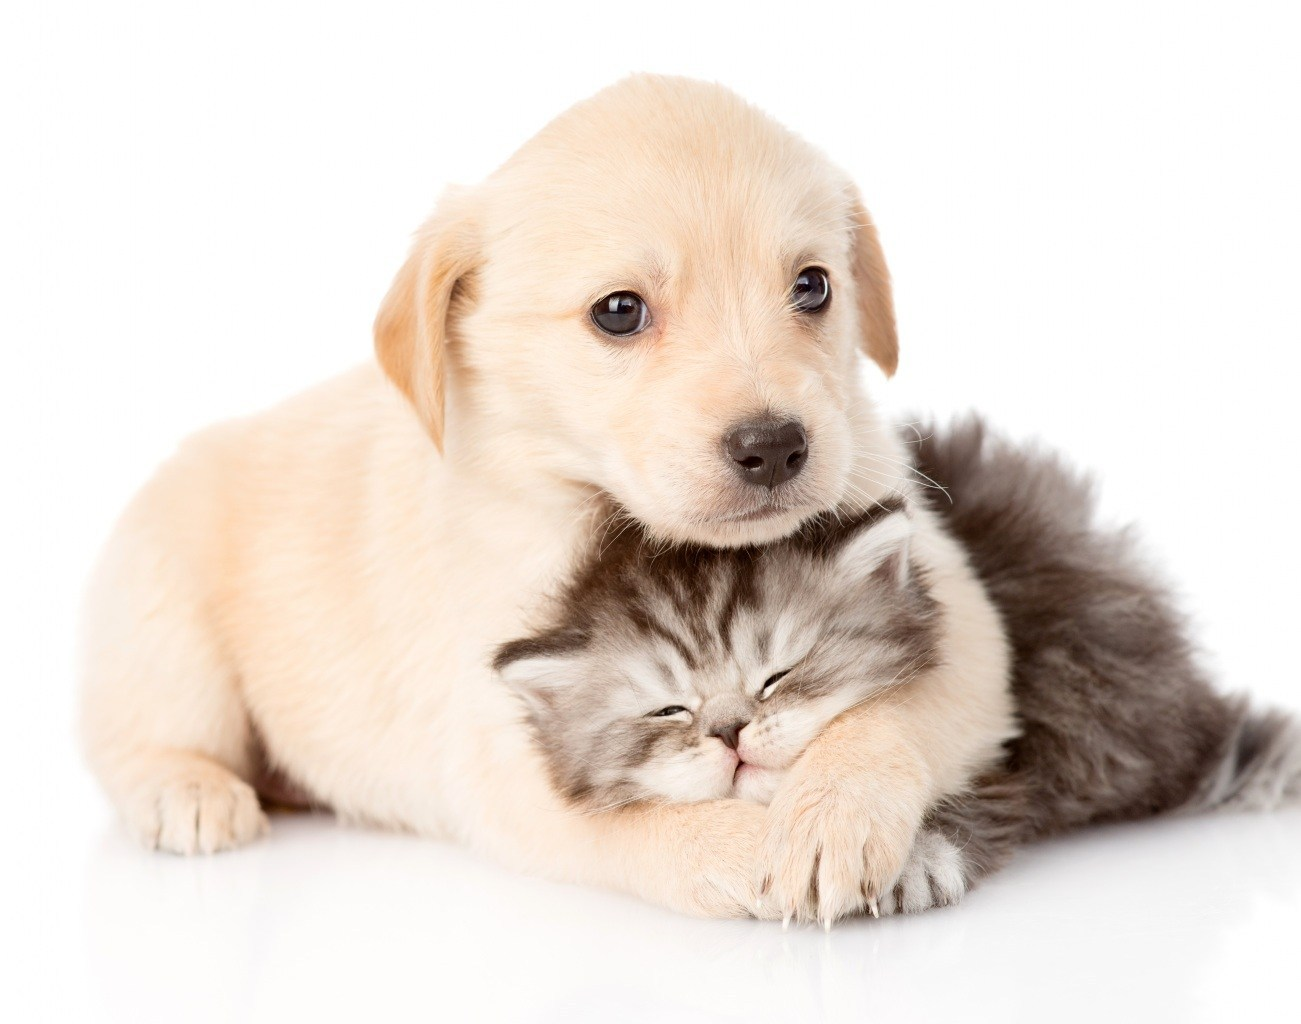 journee-international-calin-bienfait-chien-chat-mignon